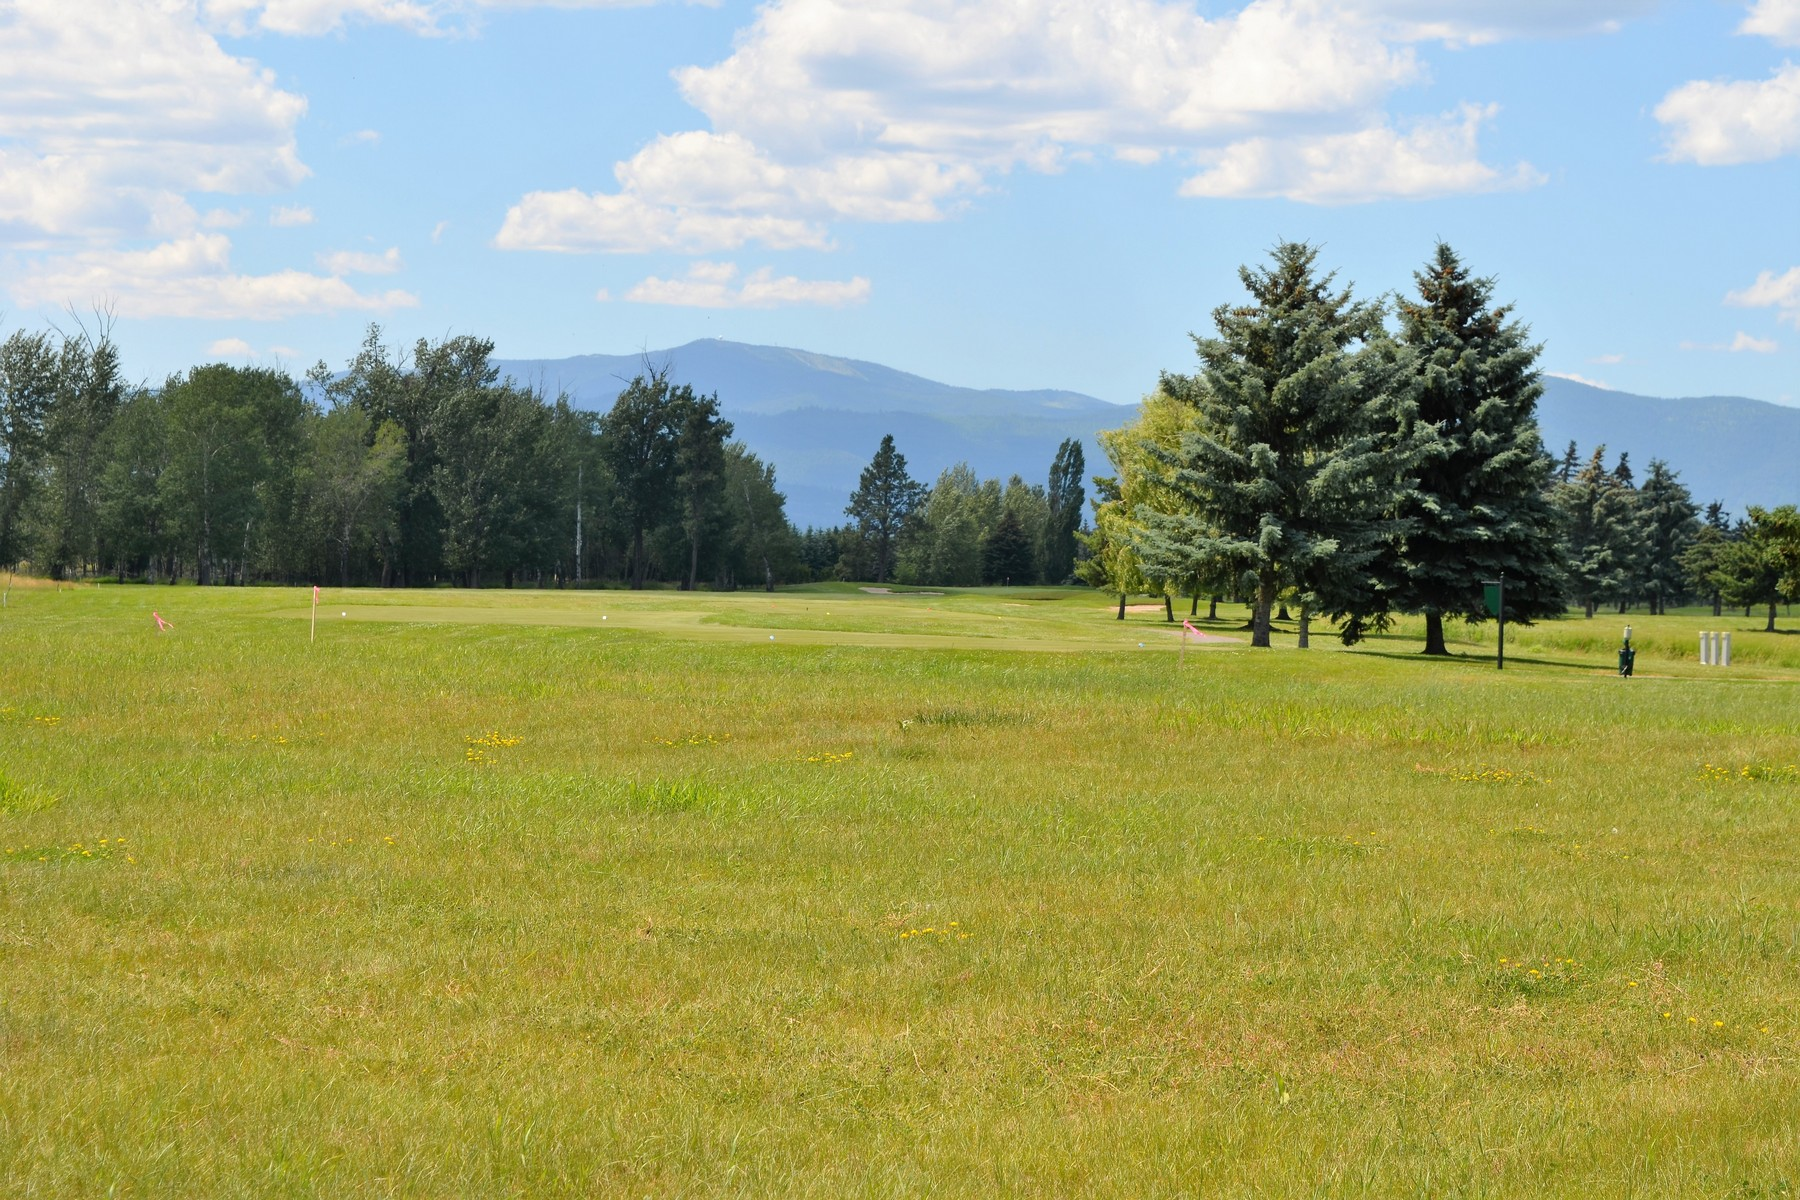 Additional photo for property listing at 1299 Lake Pointe Dr , Bigfork, MT 59911 1299  Lake Pointe Dr Bigfork, Montana 59911 United States